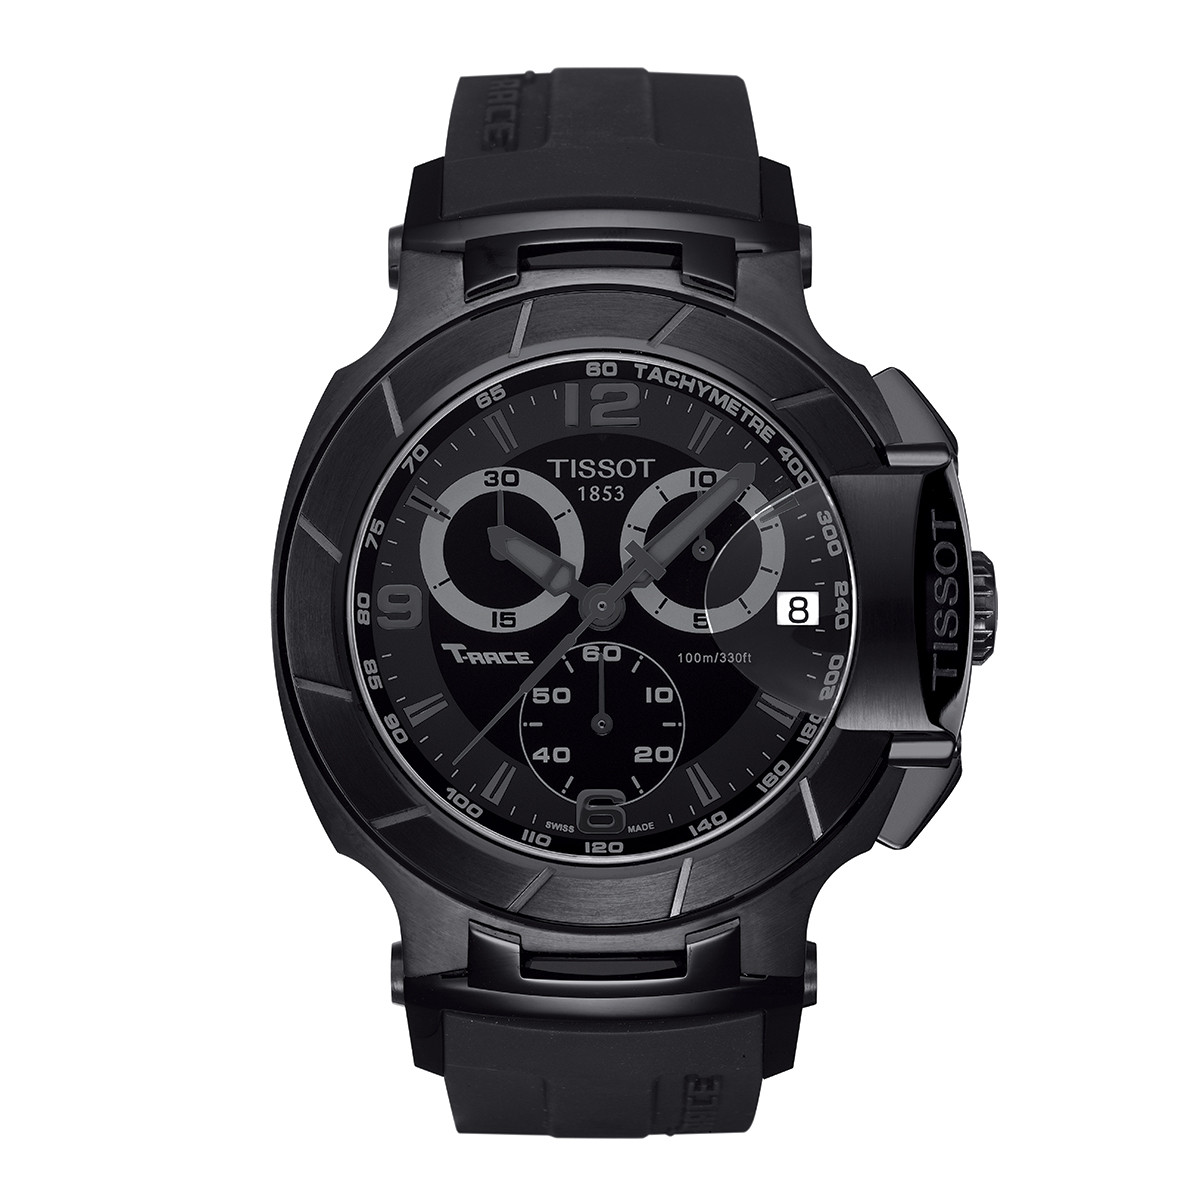 New Men's Tissot T-Race G10